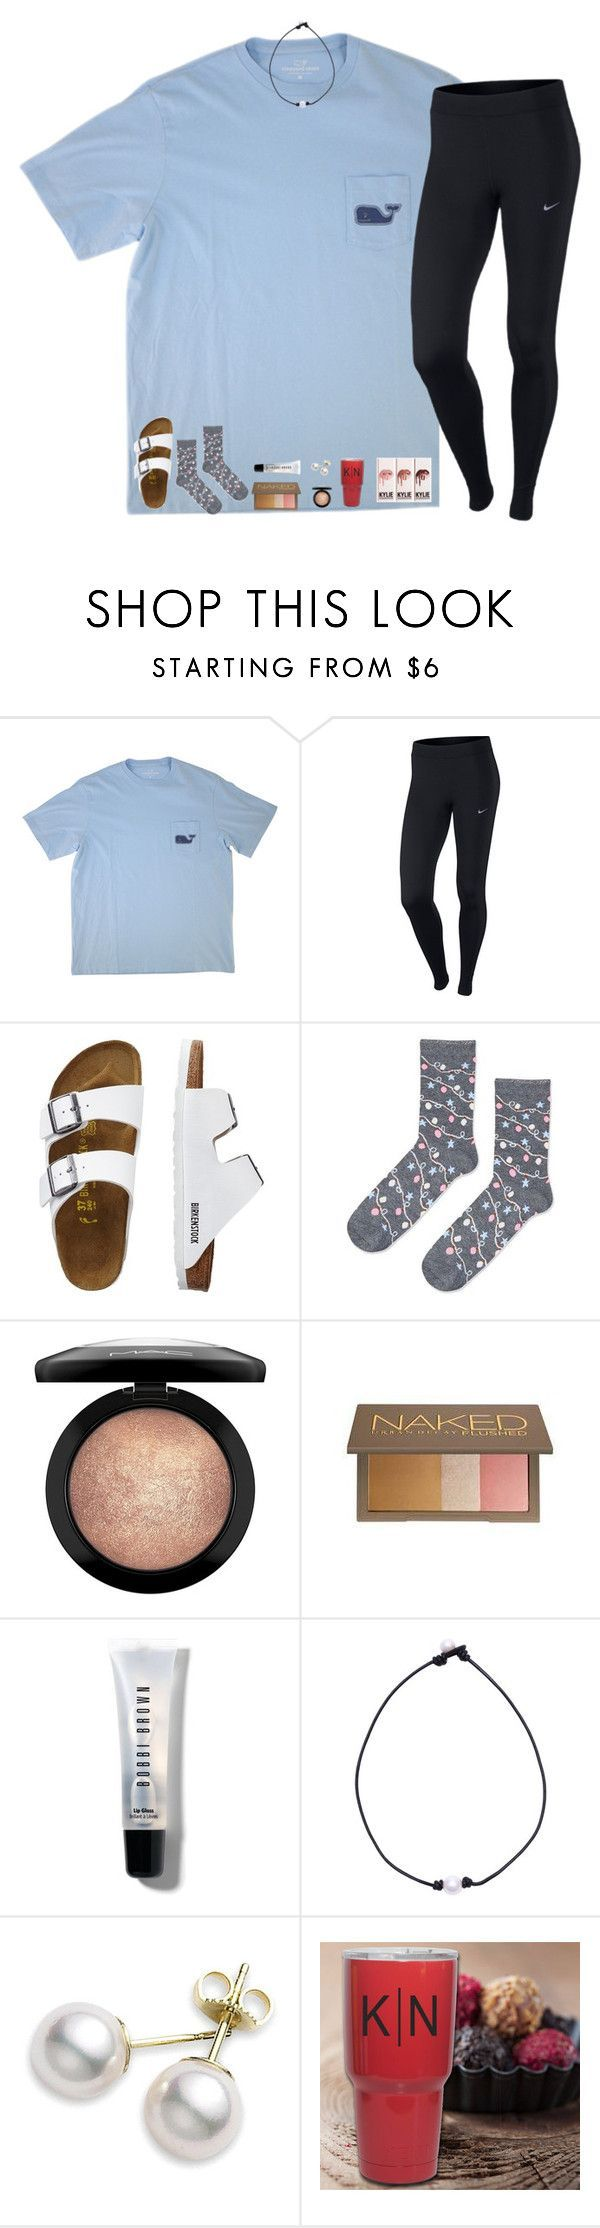 """""""Christmas contest"""" by mmprep ❤ liked on Polyvore featuring Vineyard Vines, NIKE, TravelSmith, Topshop, MAC Cosmetics, Urban Decay, Bobbi Brown Cosm…"""